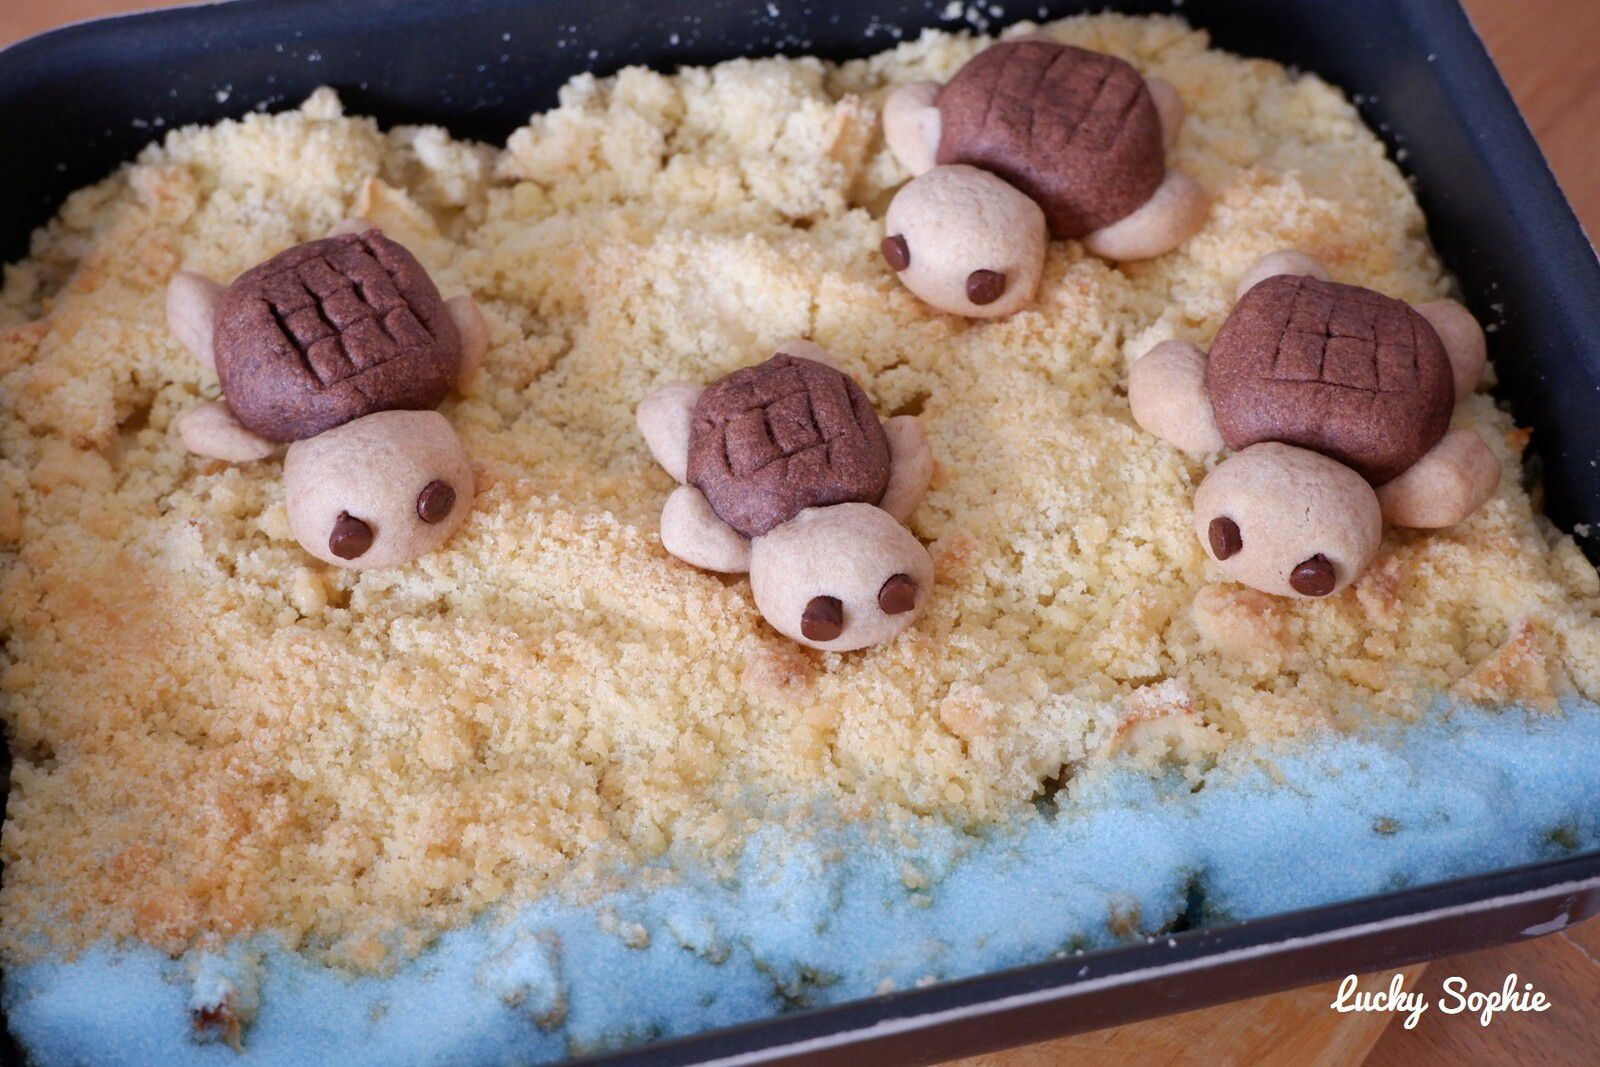 Crumble plage et biscuits tortues